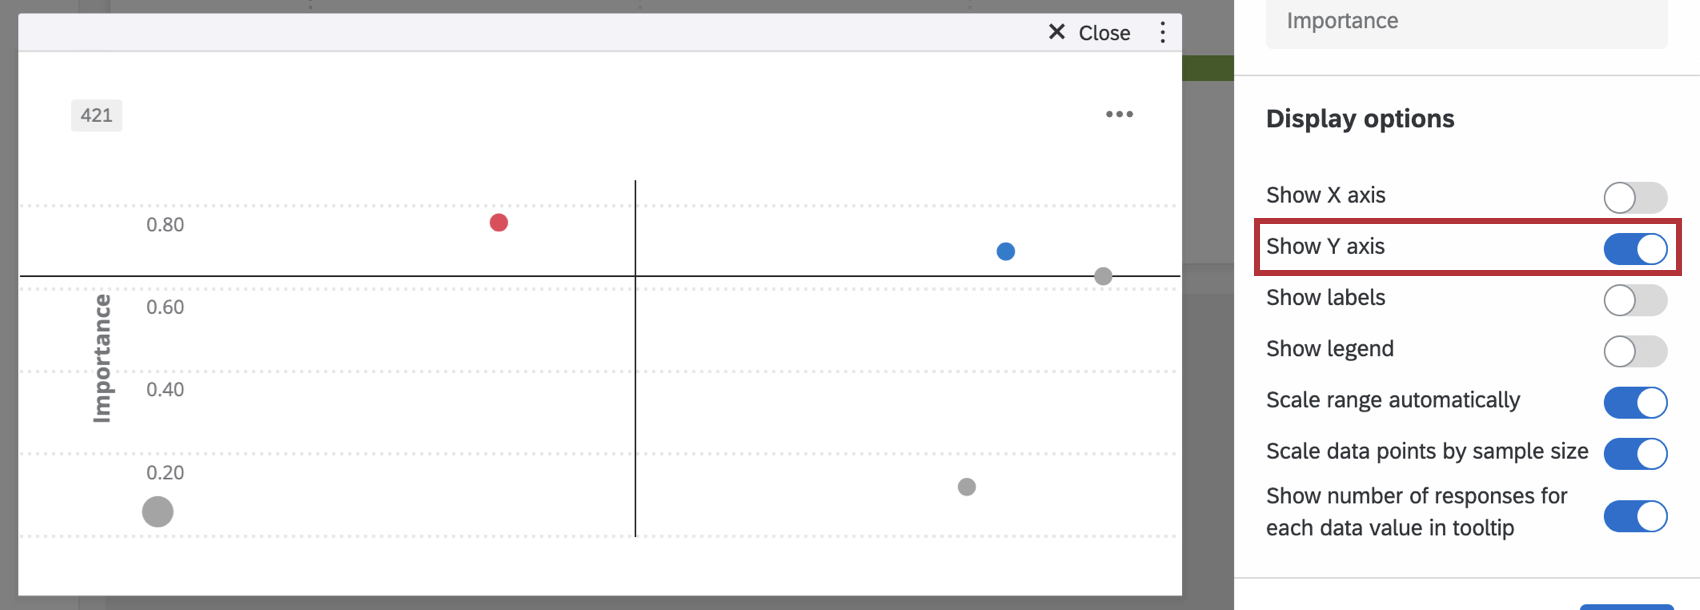 Show Y Axis checkbox in Display Options section